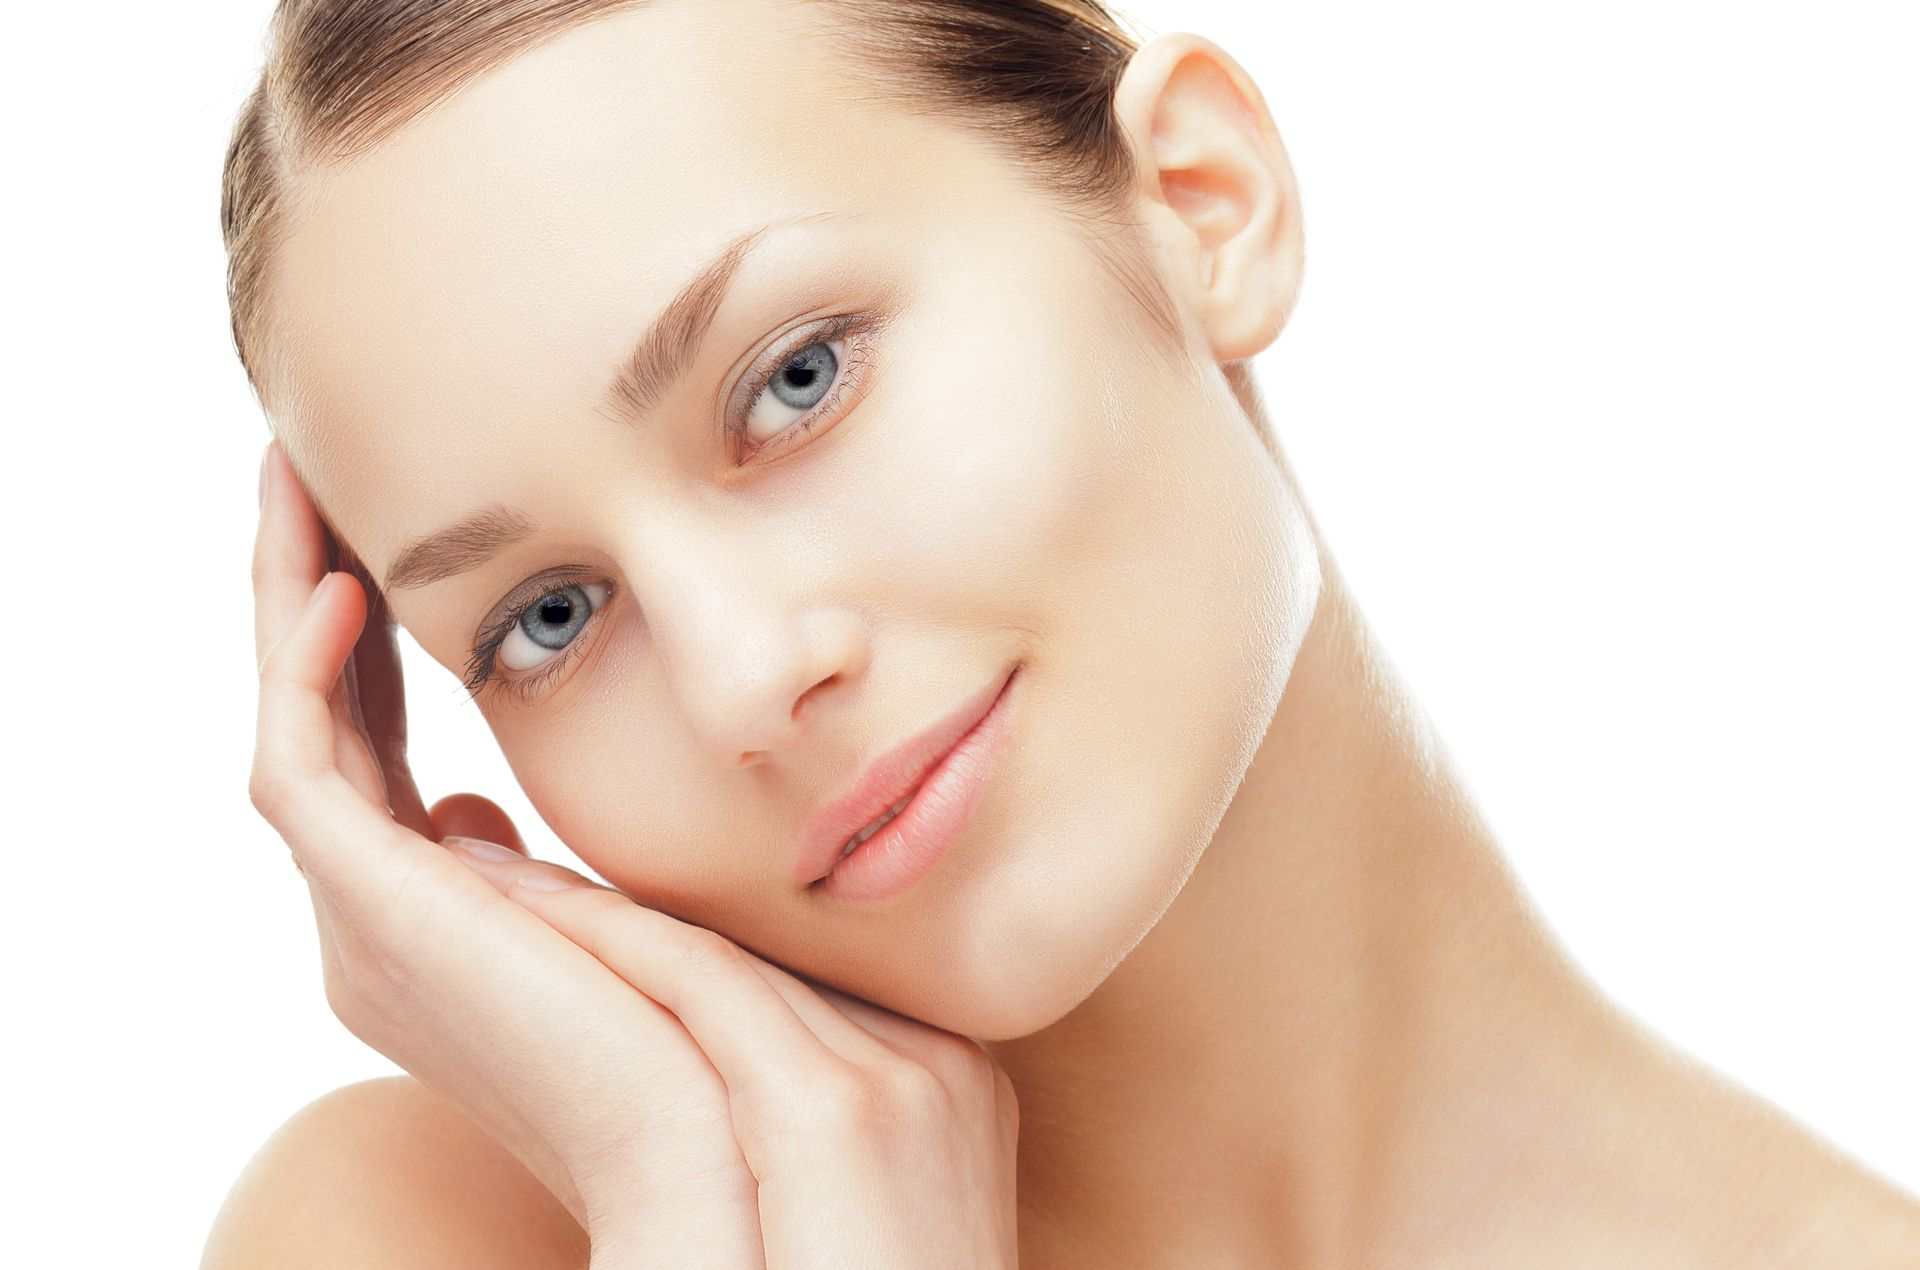 Glycolic peels and facial treatments